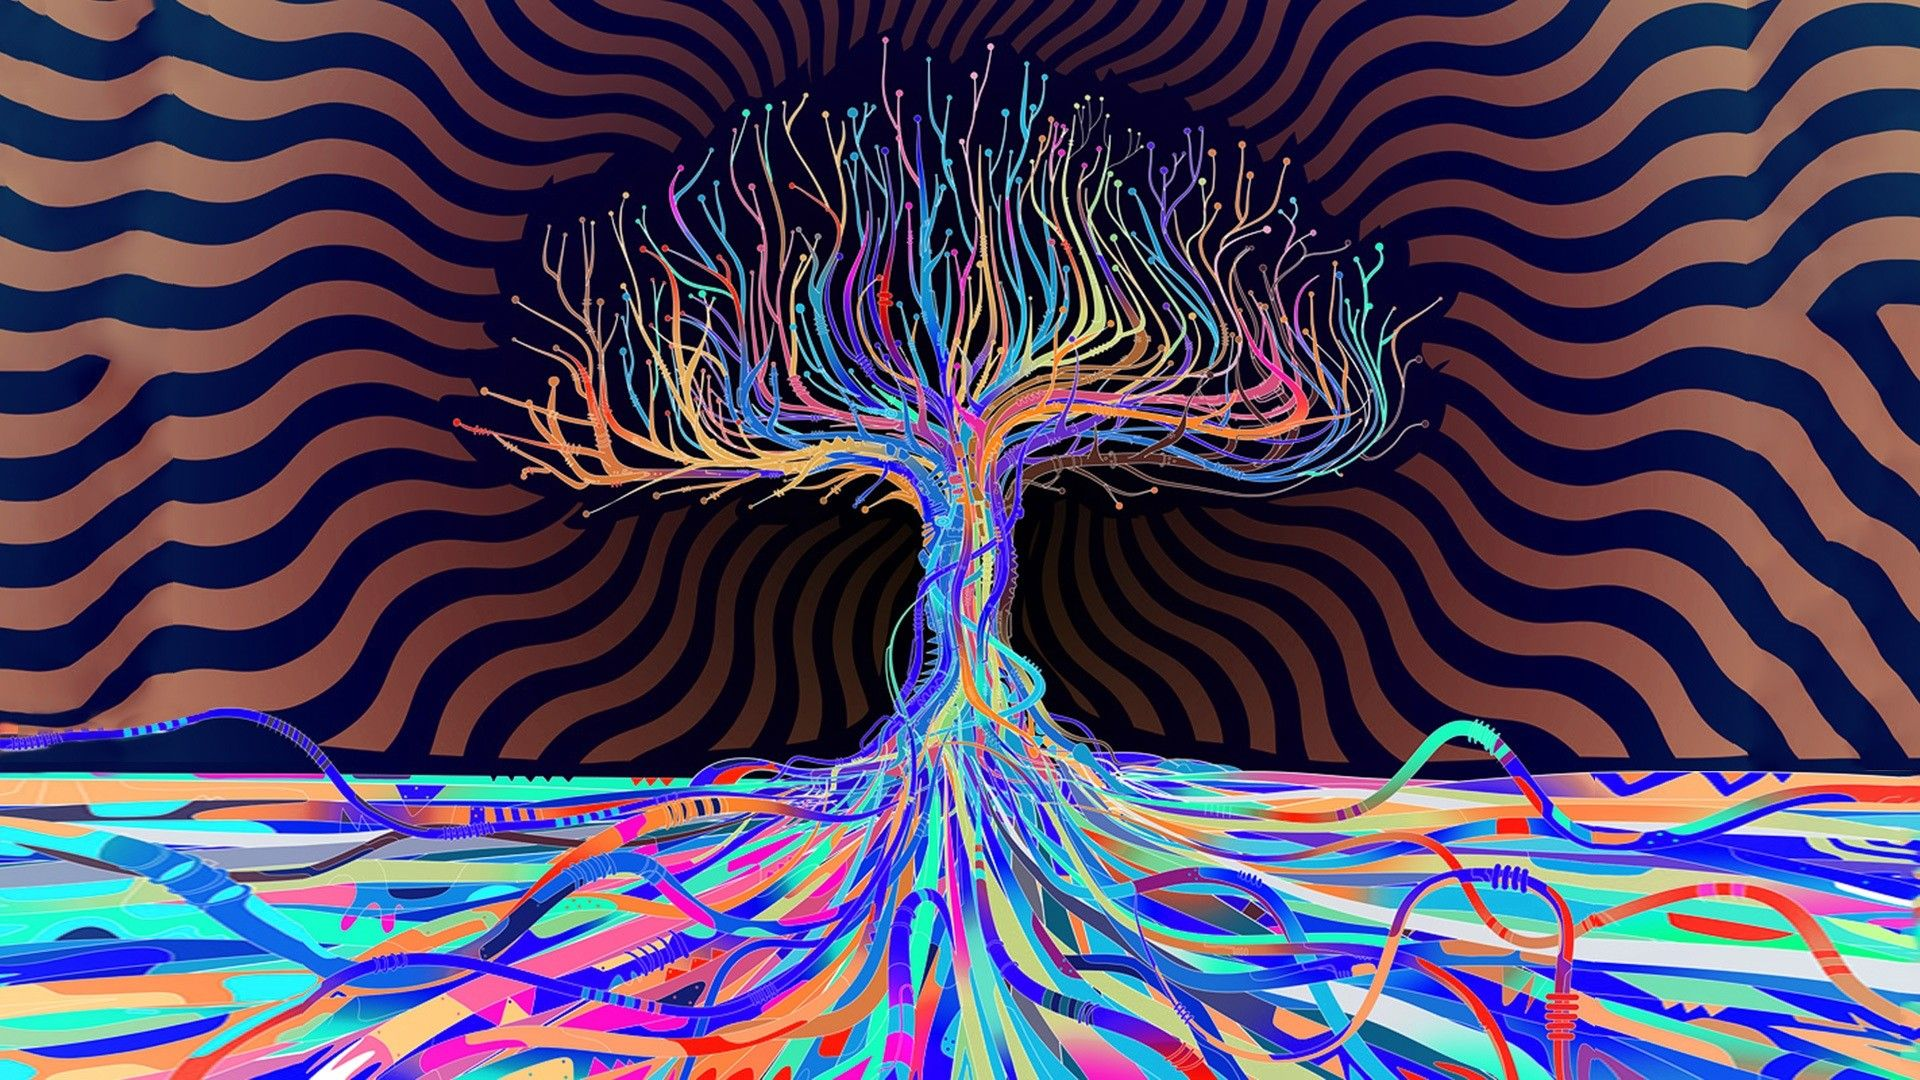 Trippy Lsd Wallpapers Top Free Trippy Lsd Backgrounds